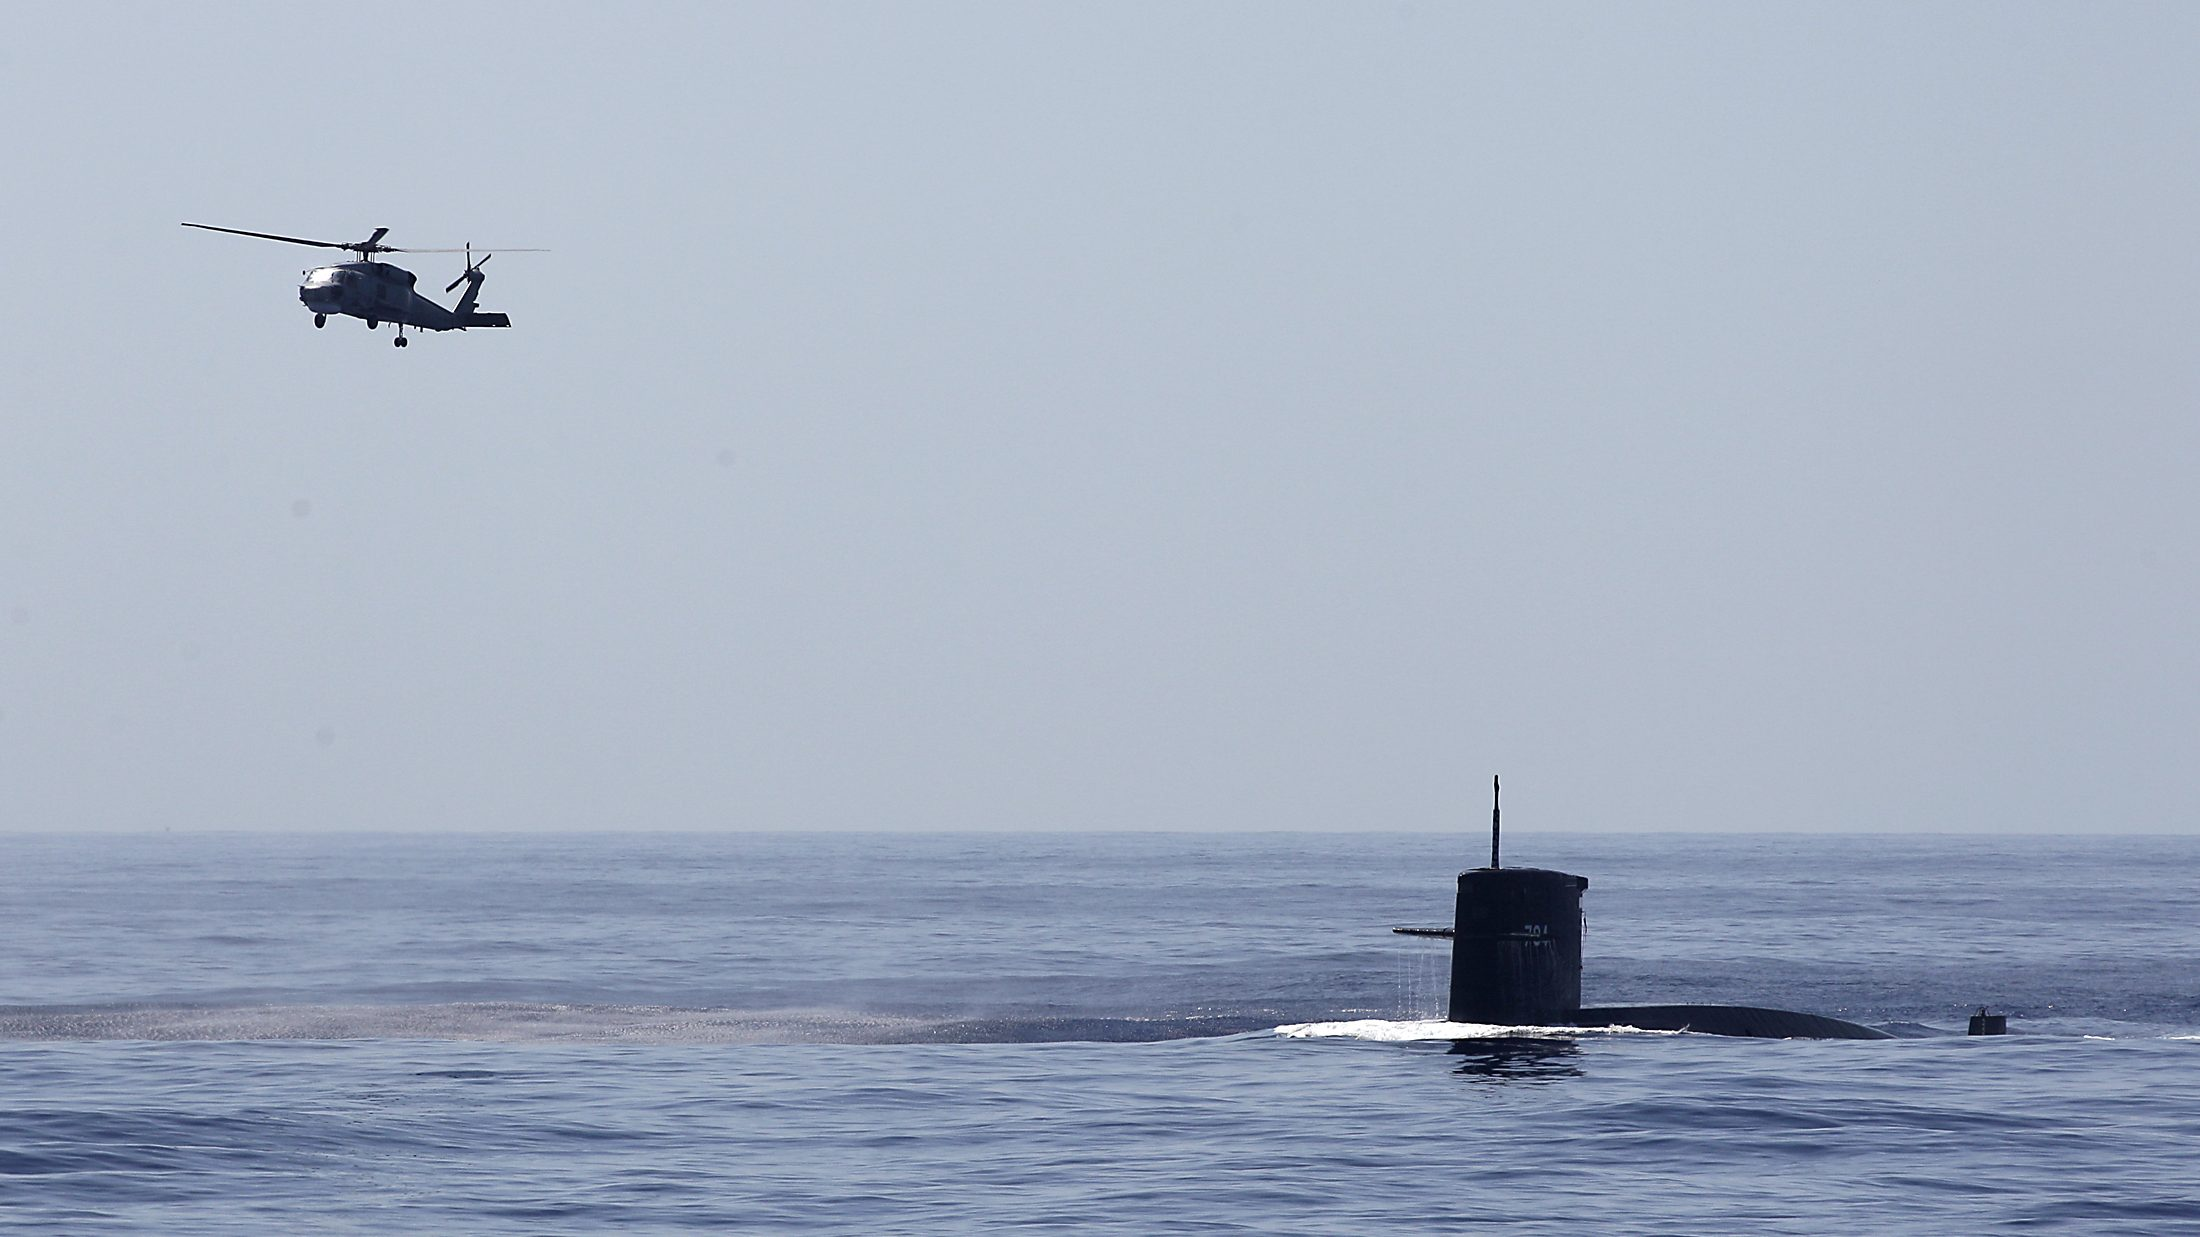 An S-70C helicopter flies over a submarine during the Han Kuang military exercise held about 10 nautical miles eastern of the port of Hualien, eastern Taiwan, September 17, 2014